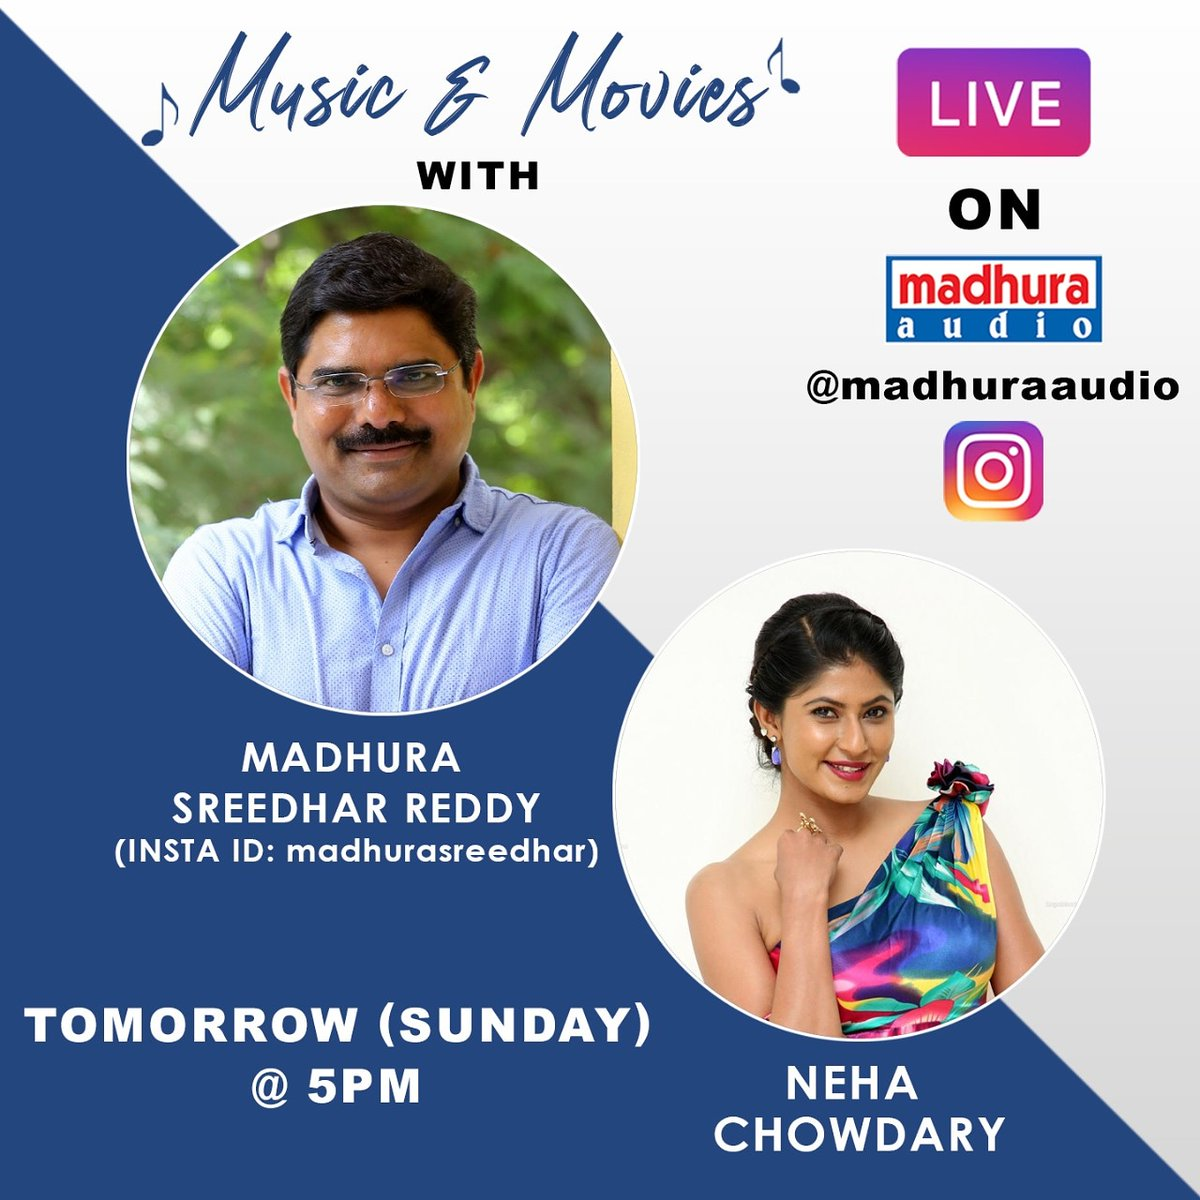 Look Here Who's Joining With Us In Live The Most Lovable Person And Producer @madhurasreedhar Garu Will Be In Live With Anchor @thenehachowdary Tomorrow  @ 5 PM Stay Tuned To @MadhuraAudio Insta Handle  #YoursMusically #yoursmusically #telugumusically #TeluguMusic  #madhuraaudiopic.twitter.com/Szlzpw7Q0E